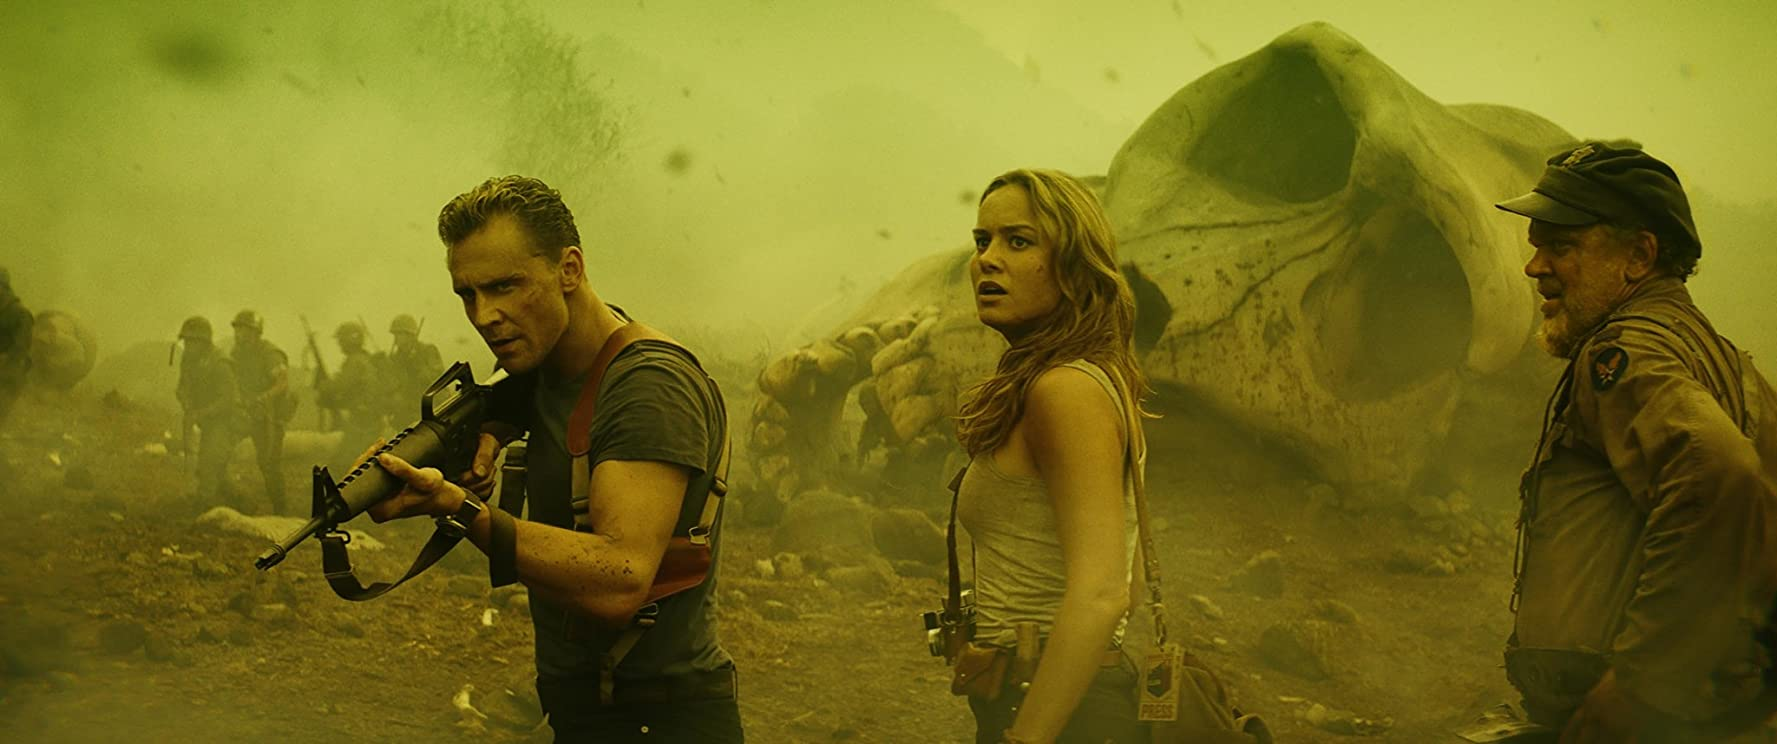 John C. Reilly, Brie Larson, and Tom Hiddleston in Kong: Skull Island (2017)